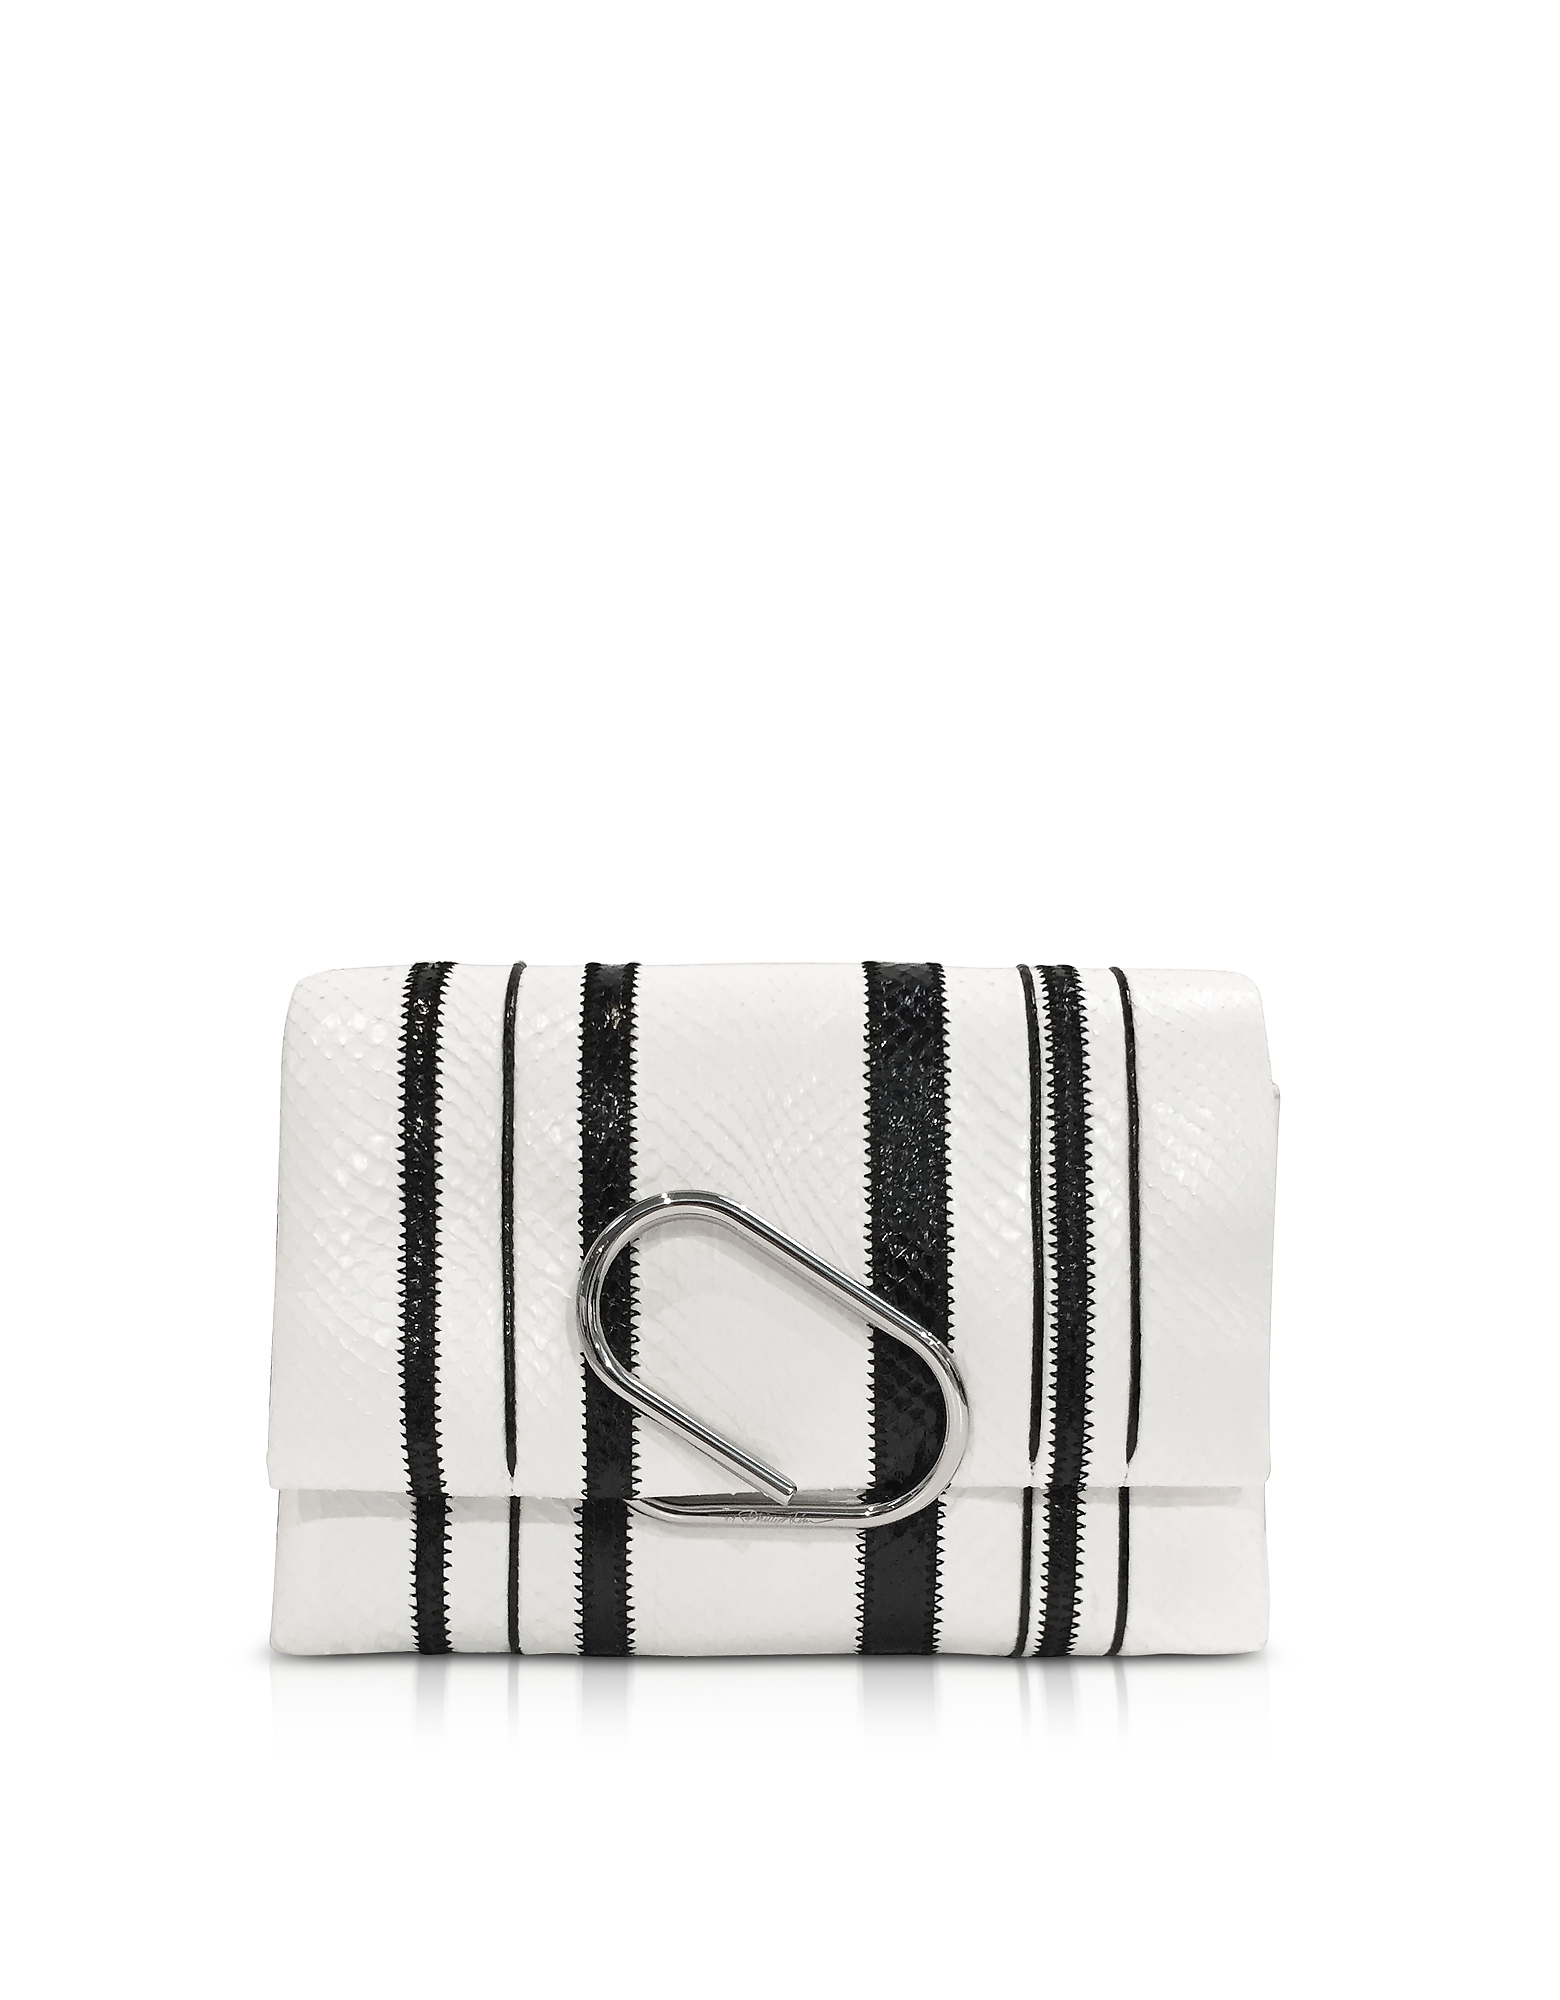 3.1 Phillip Lim Handbags, Black & White Alix Soft Flap Clutch